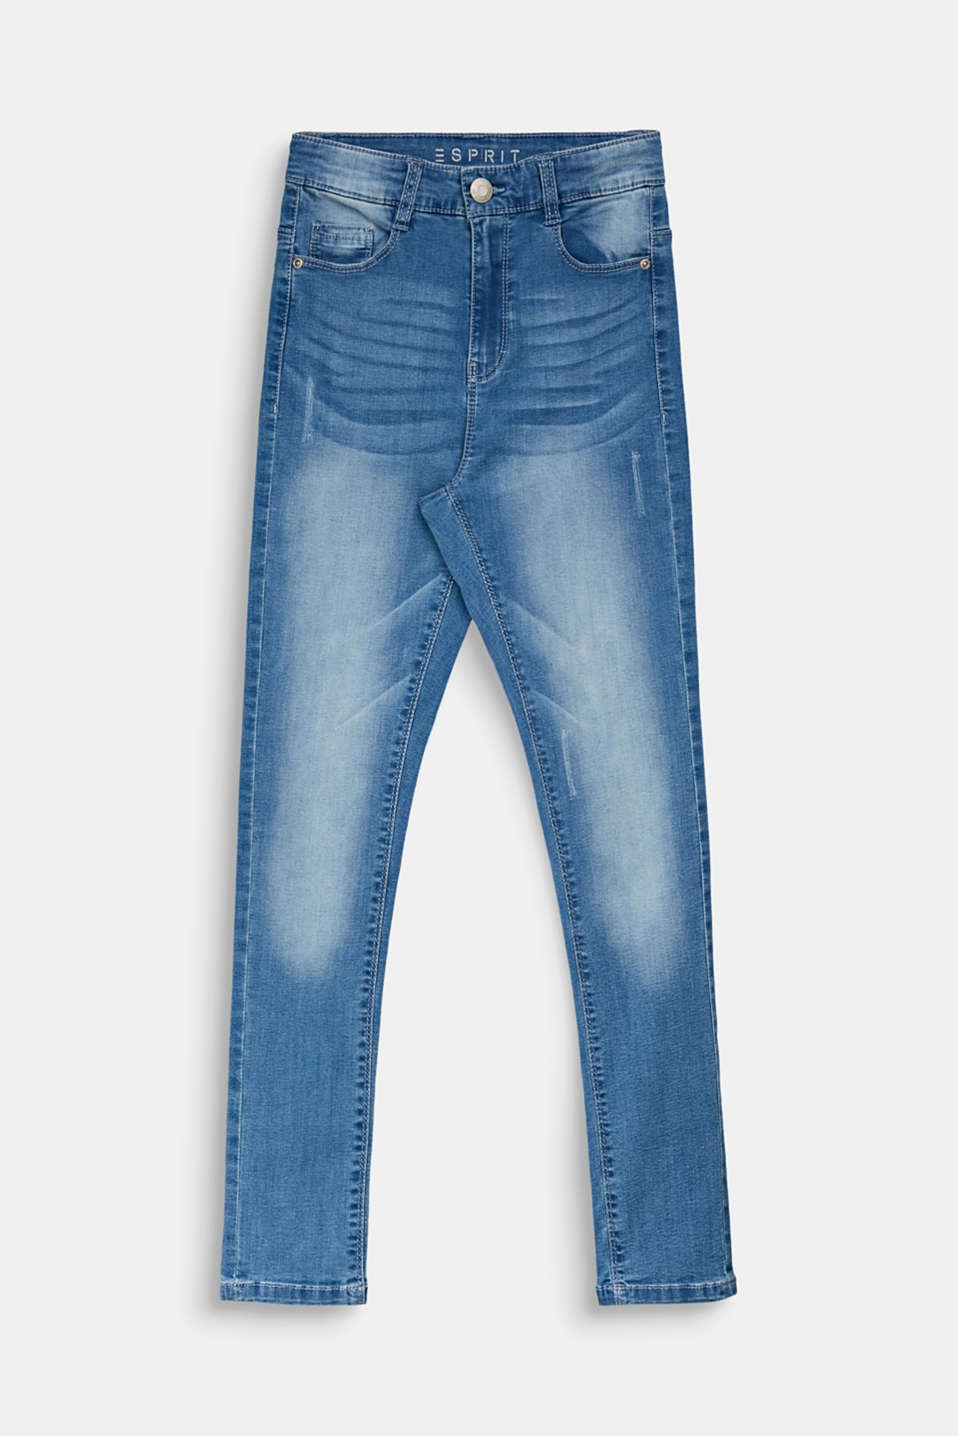 Esprit - Jeans im Used-Look, Verstellbund